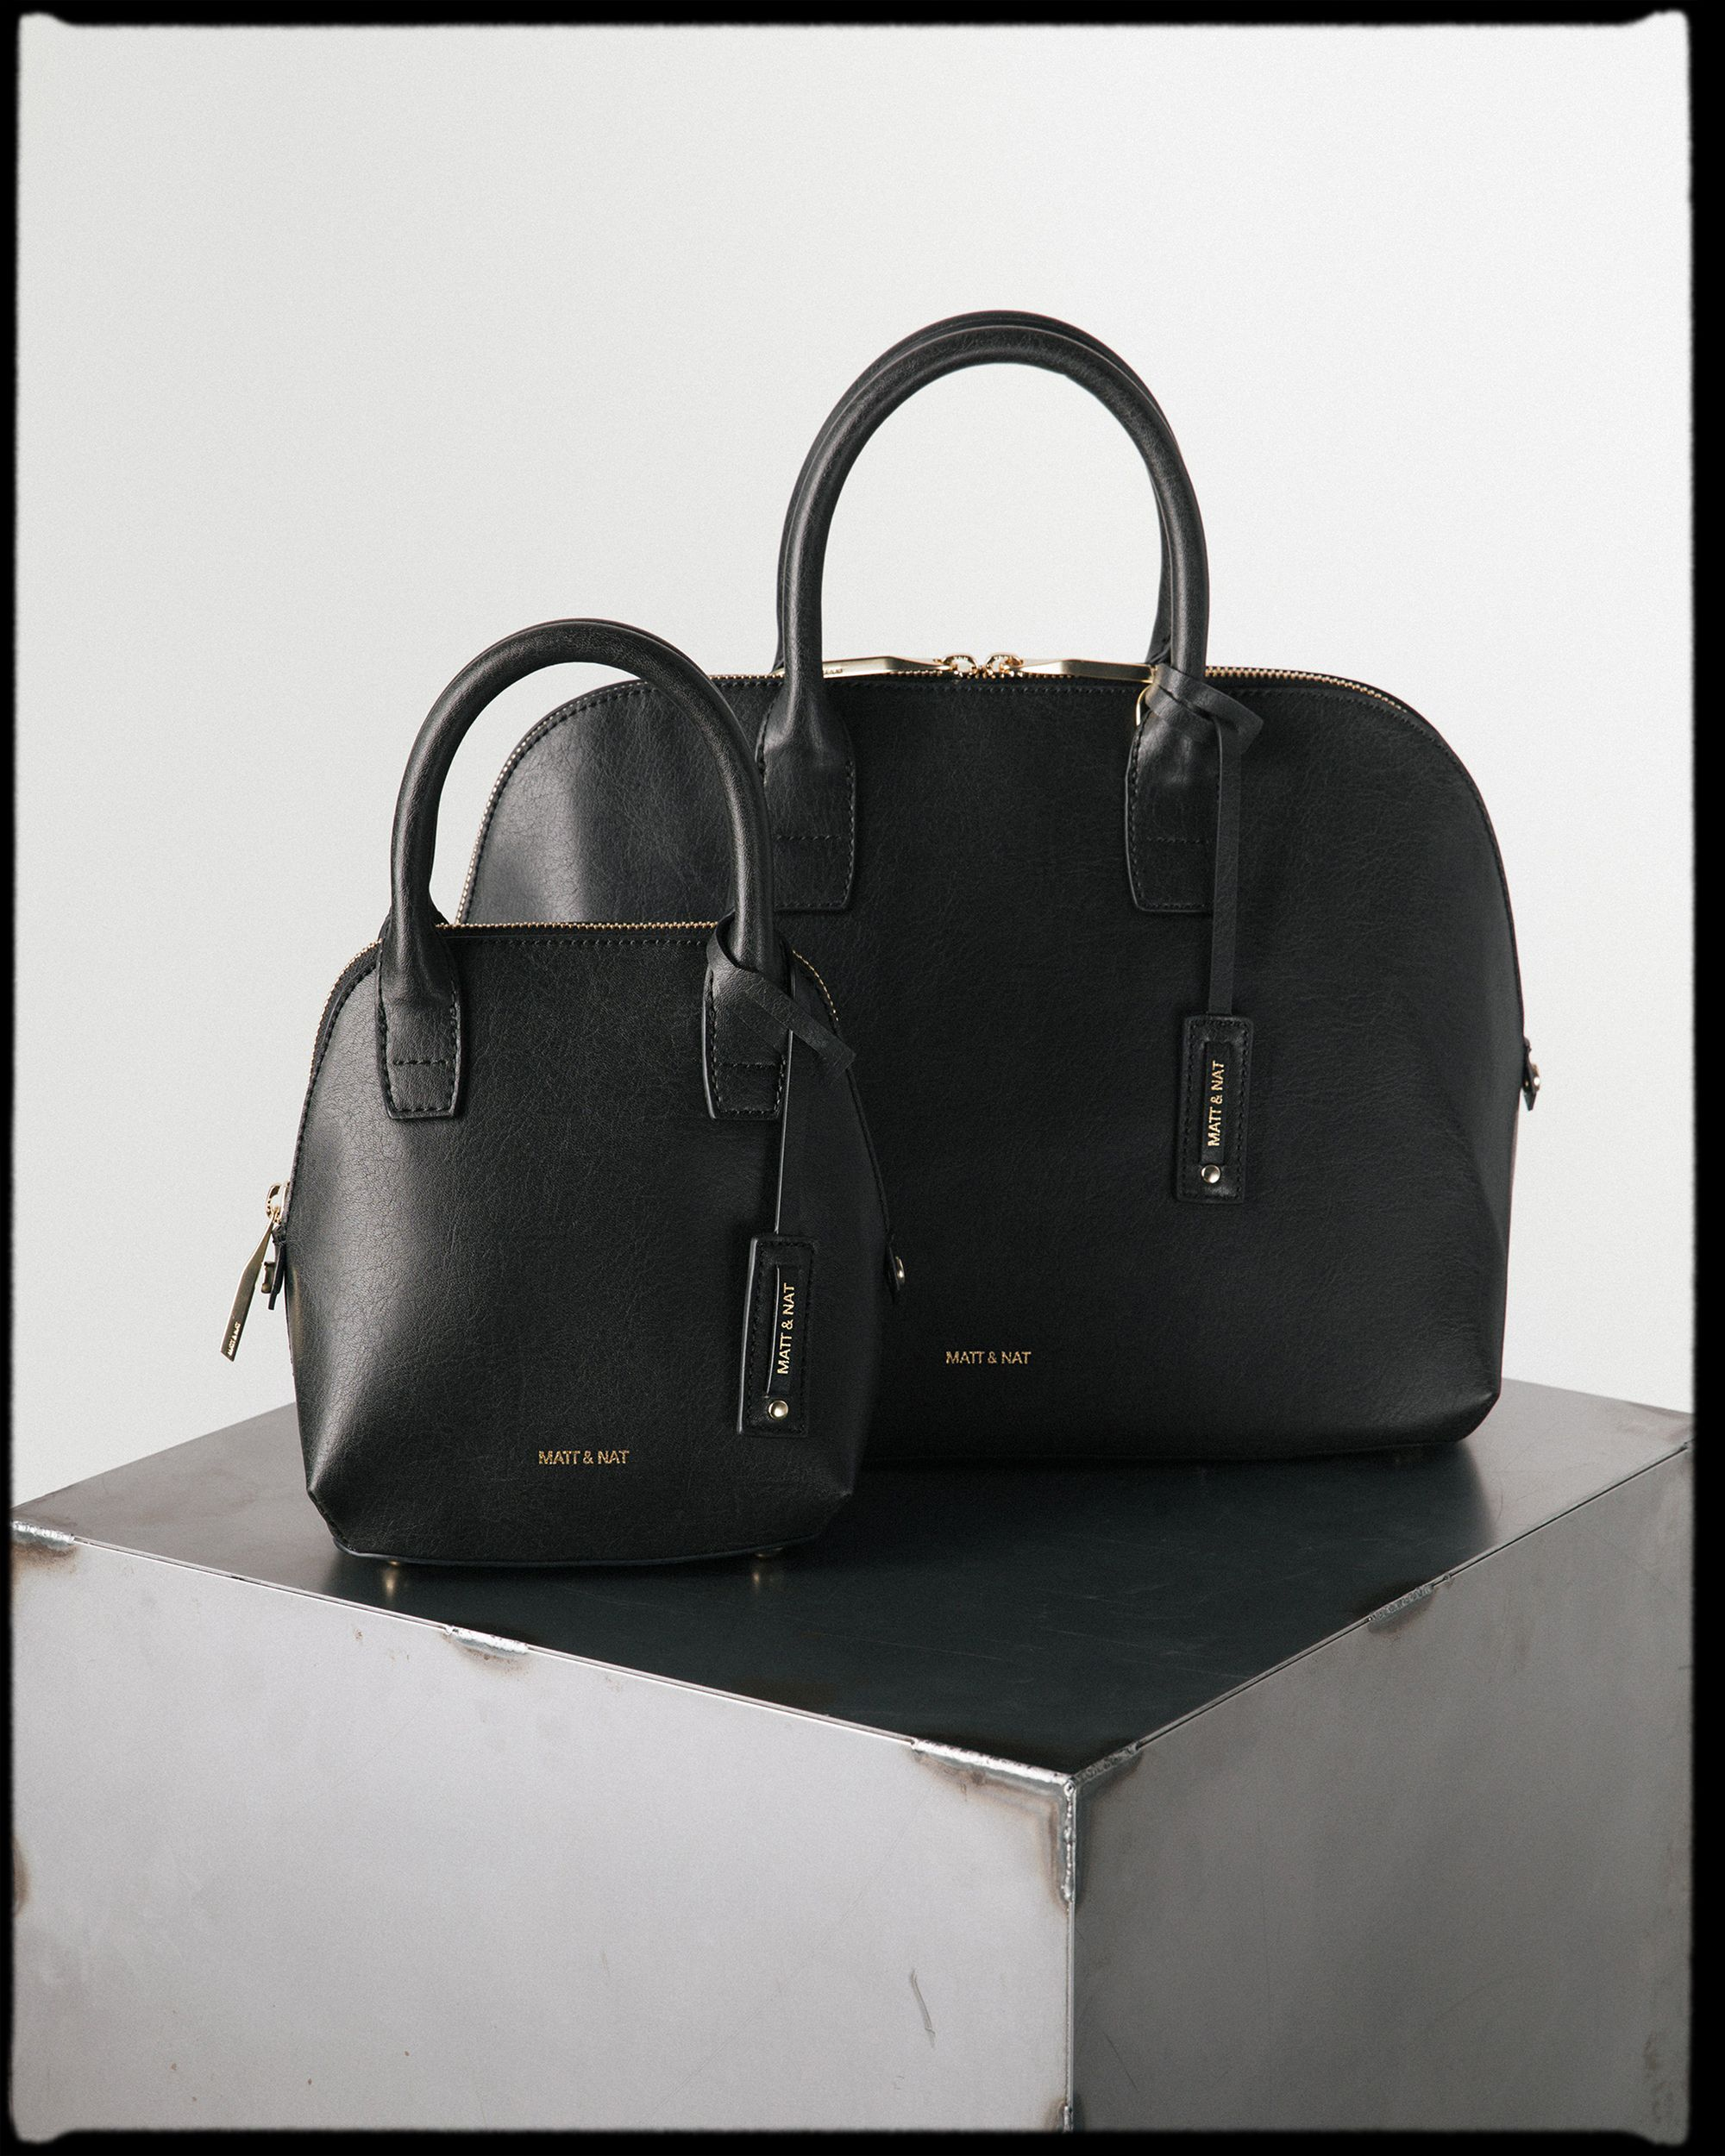 6887e374ac9d The GESSI & GESSI SM in BLACK. | Handbags | Vegan handbags, Biggie ...